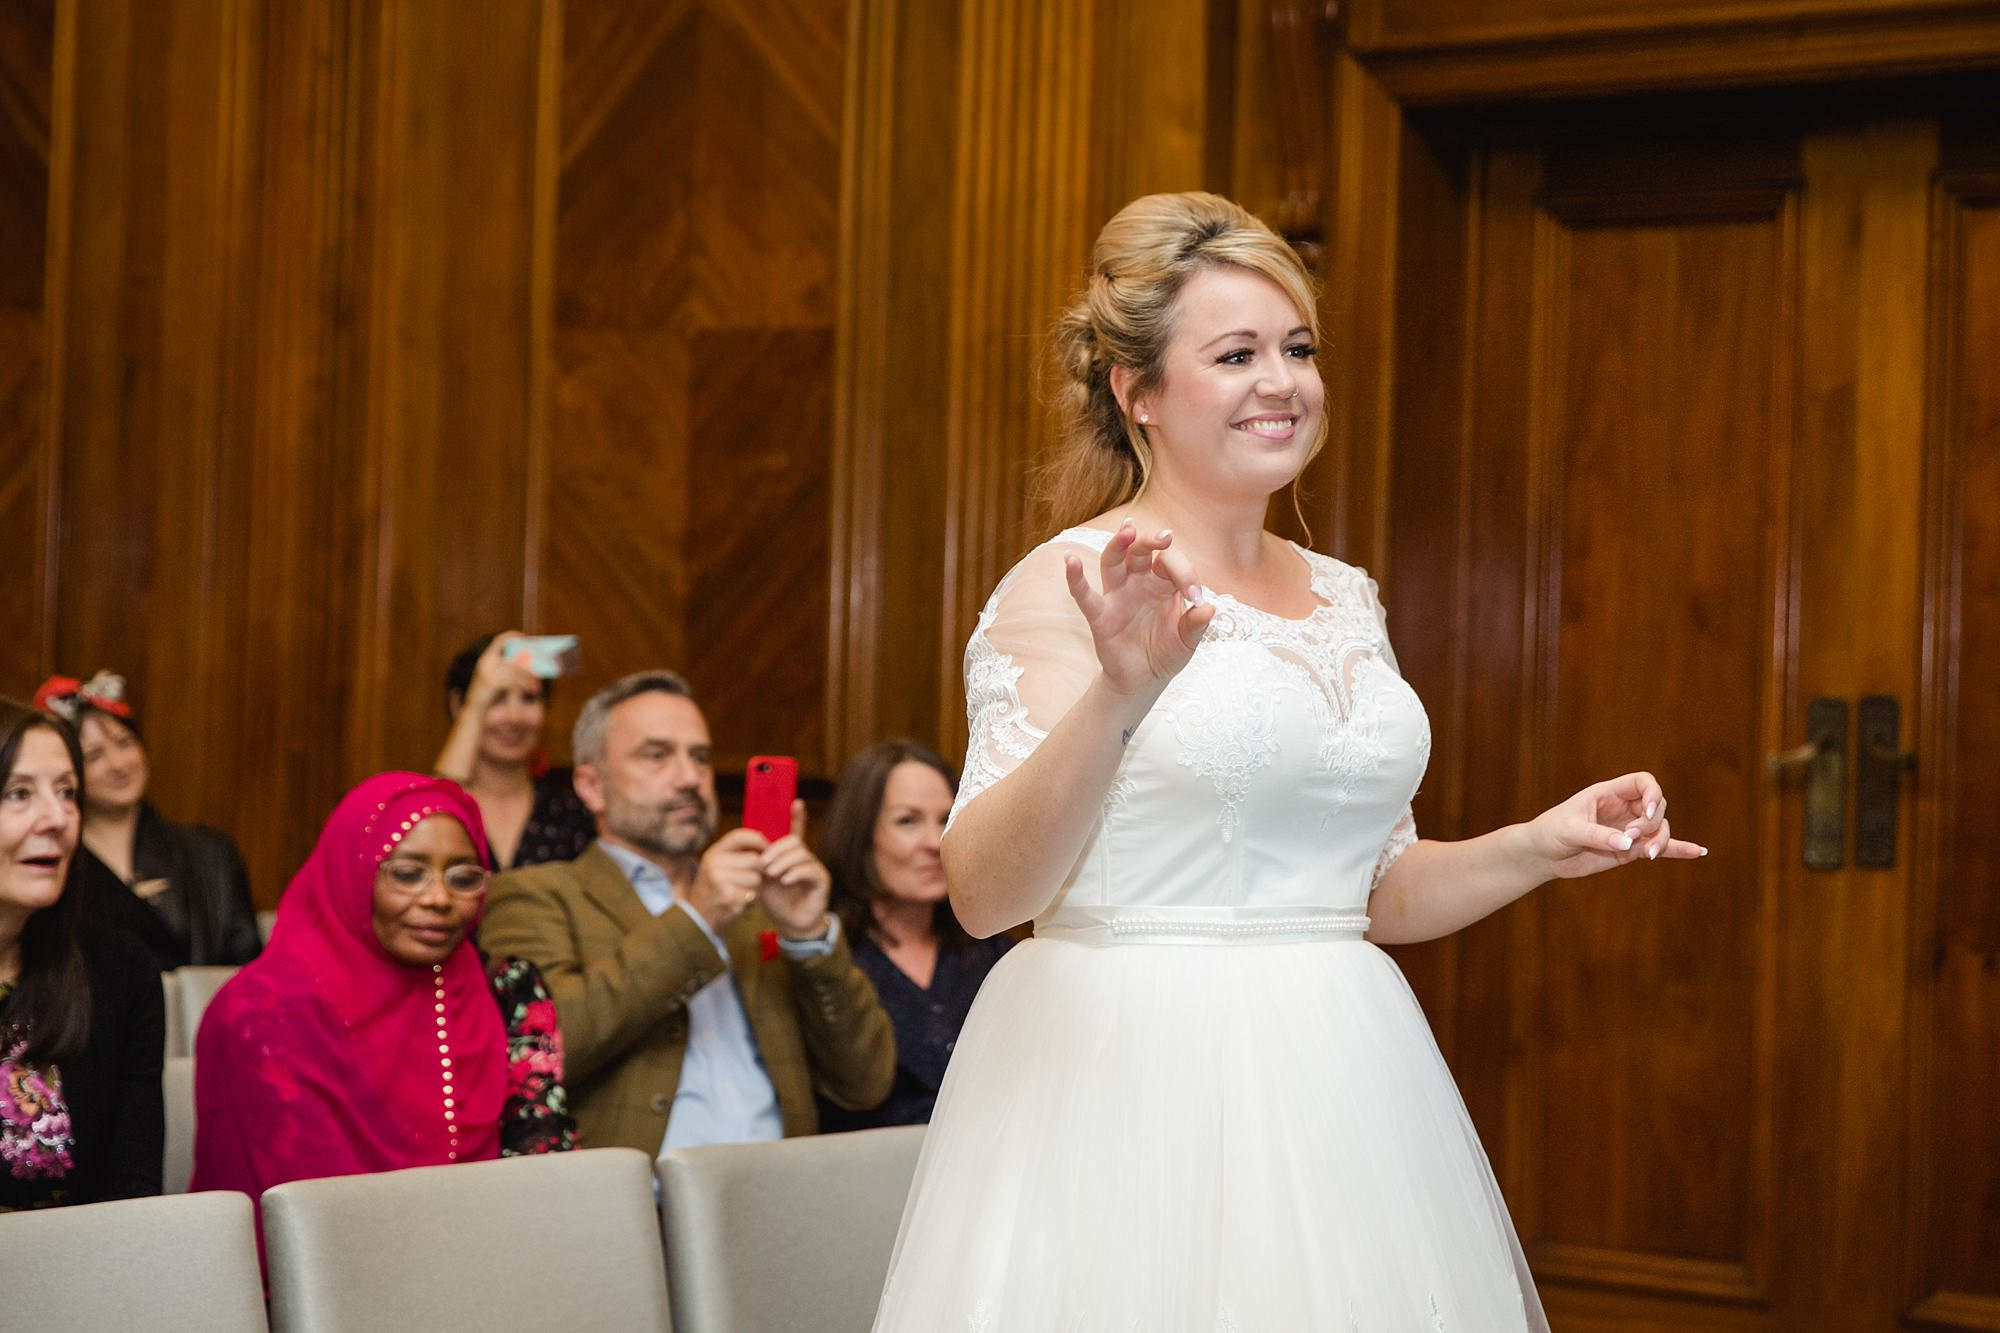 Old Marylebone Town Hall wedding photography portrait of bride conducting choir